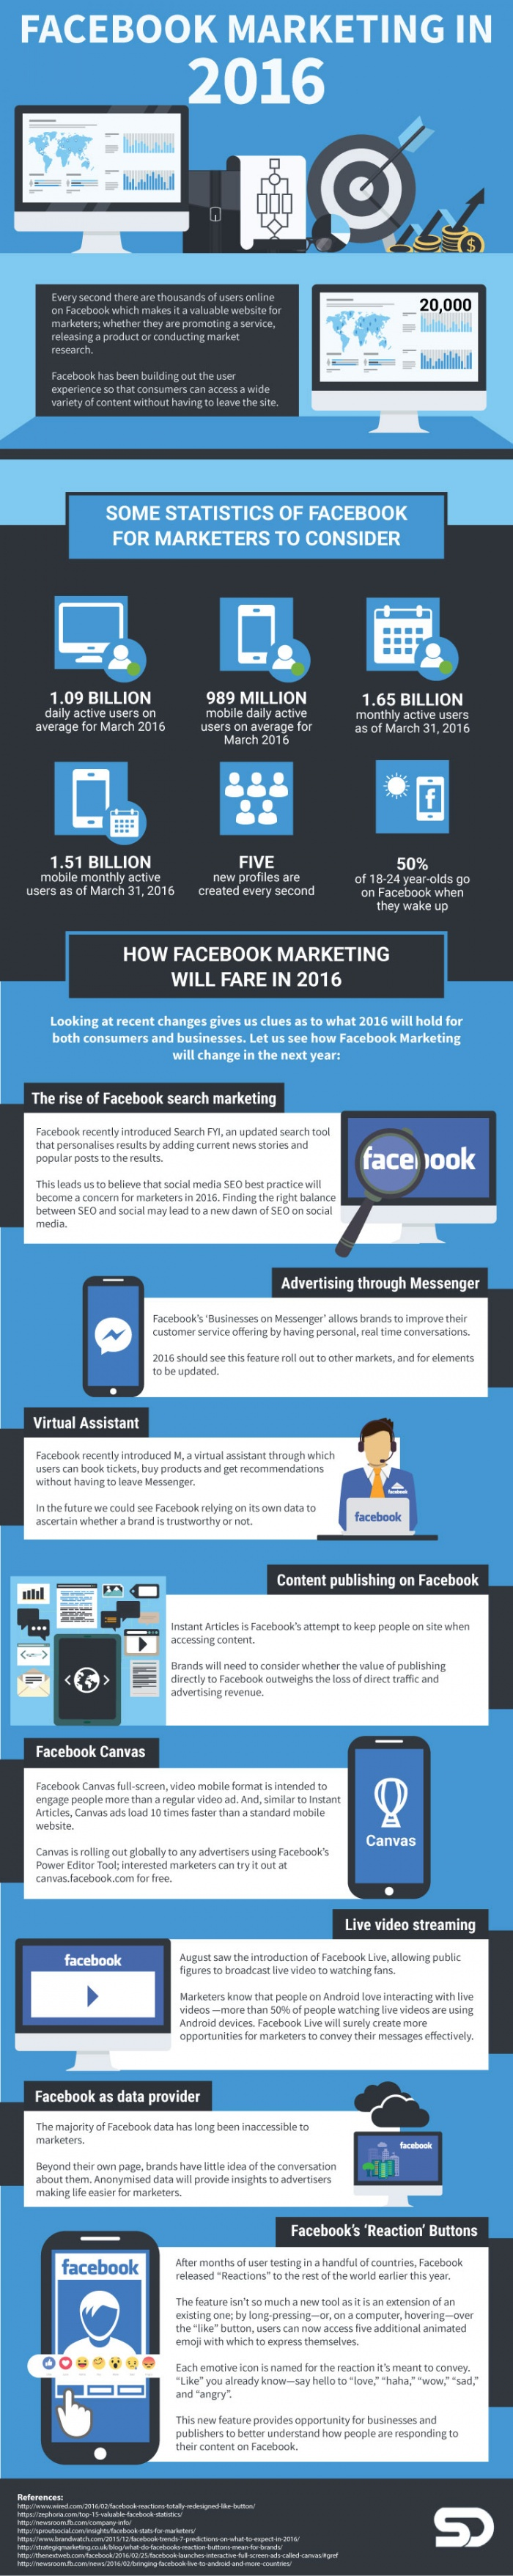 8 Ways to Do Facebook Marketing In 2016 (INFOGRAPHIC)